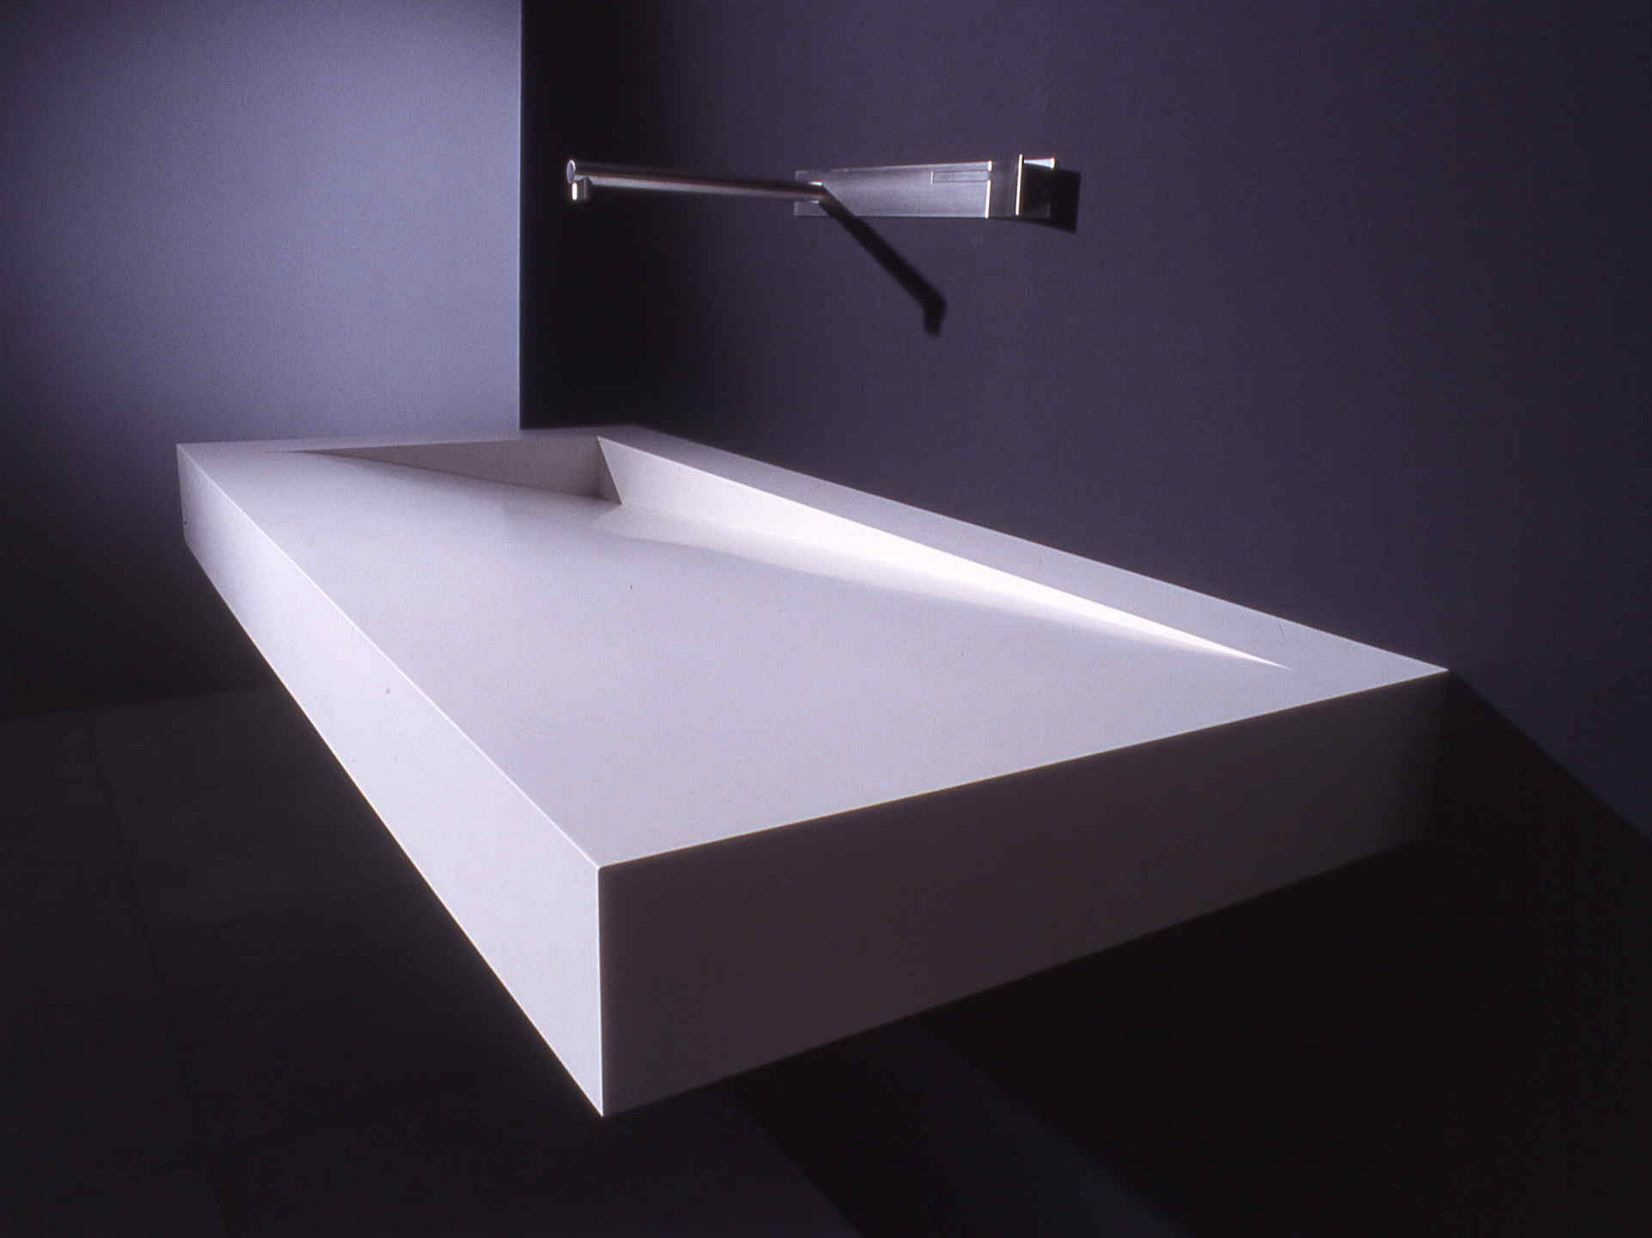 Lavabo rettangolare in corian® folio by boffi design neunzig° design